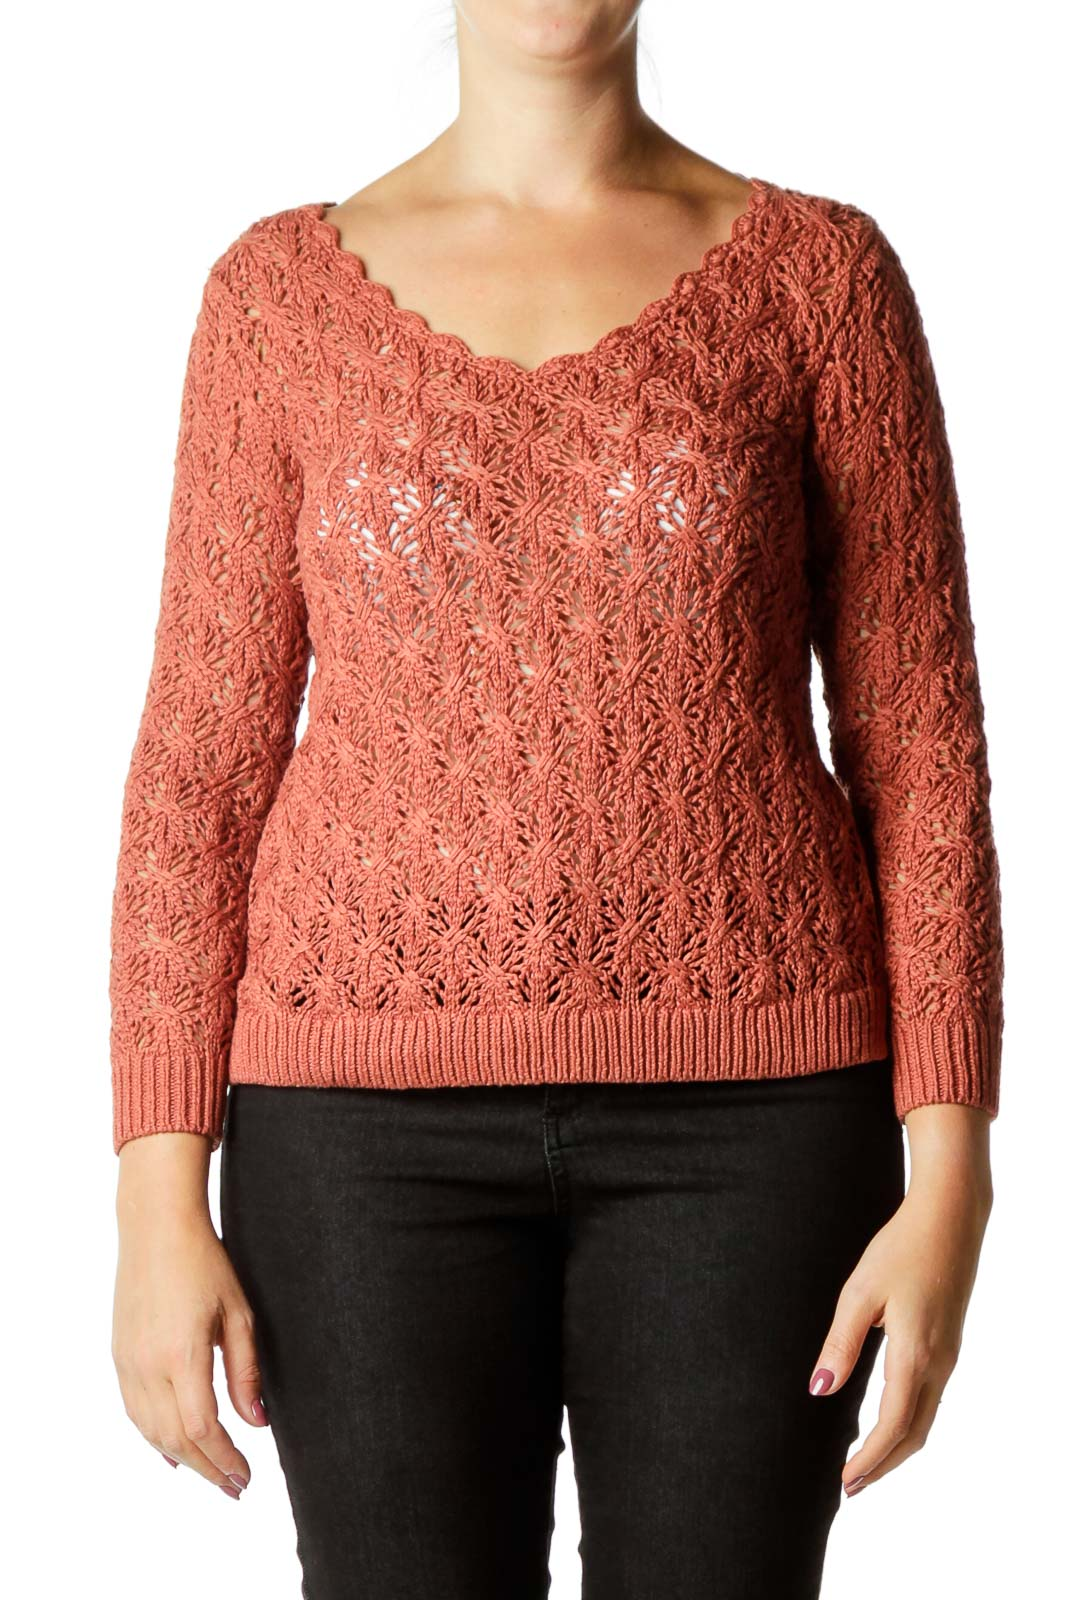 Brown Crocheted Round Neck Knit Top